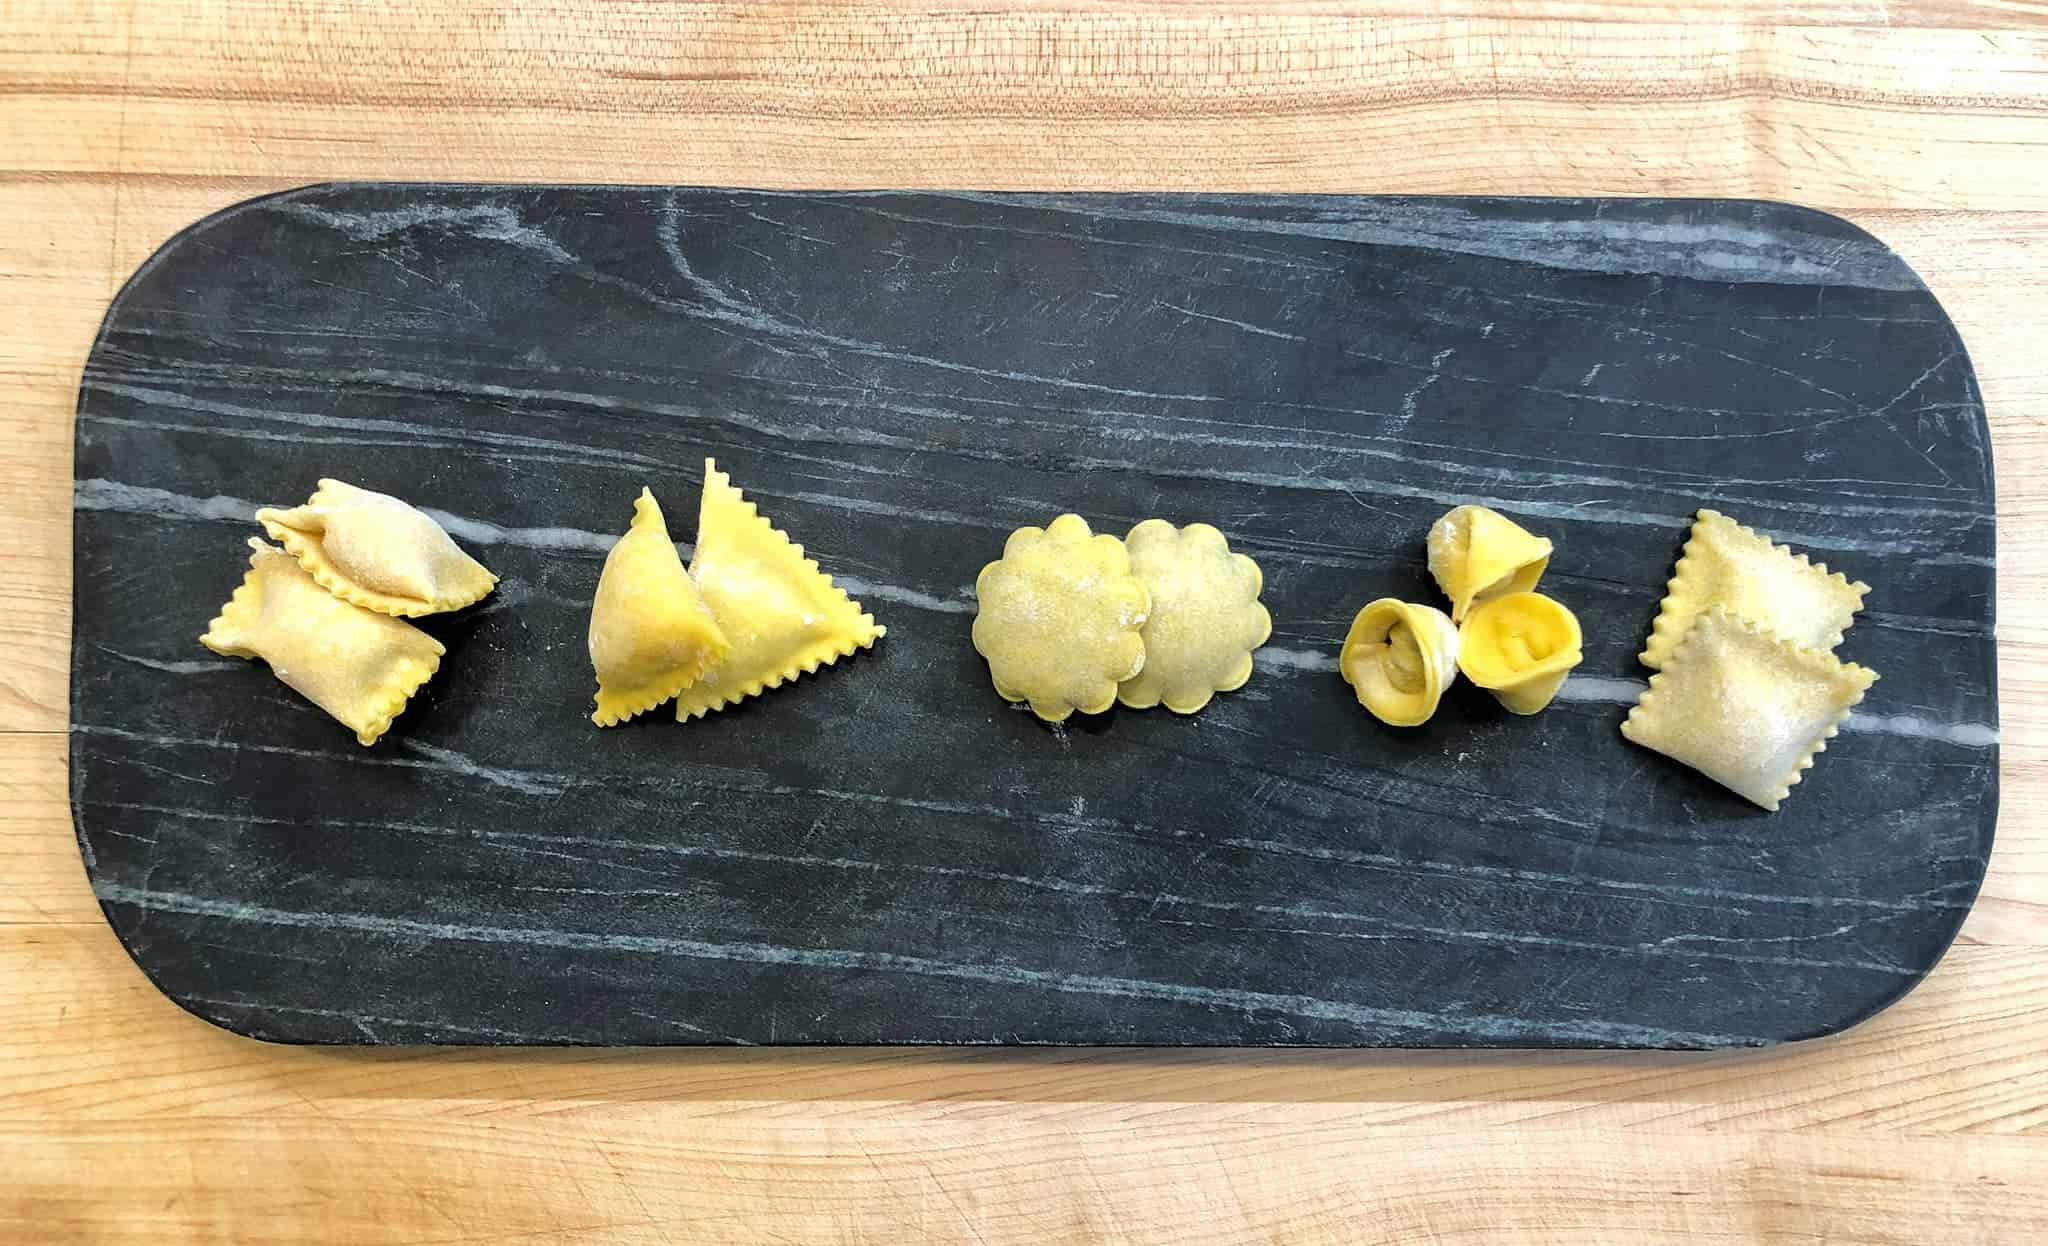 Different types of ravioli from Forrest, A Food Studio on a platter.